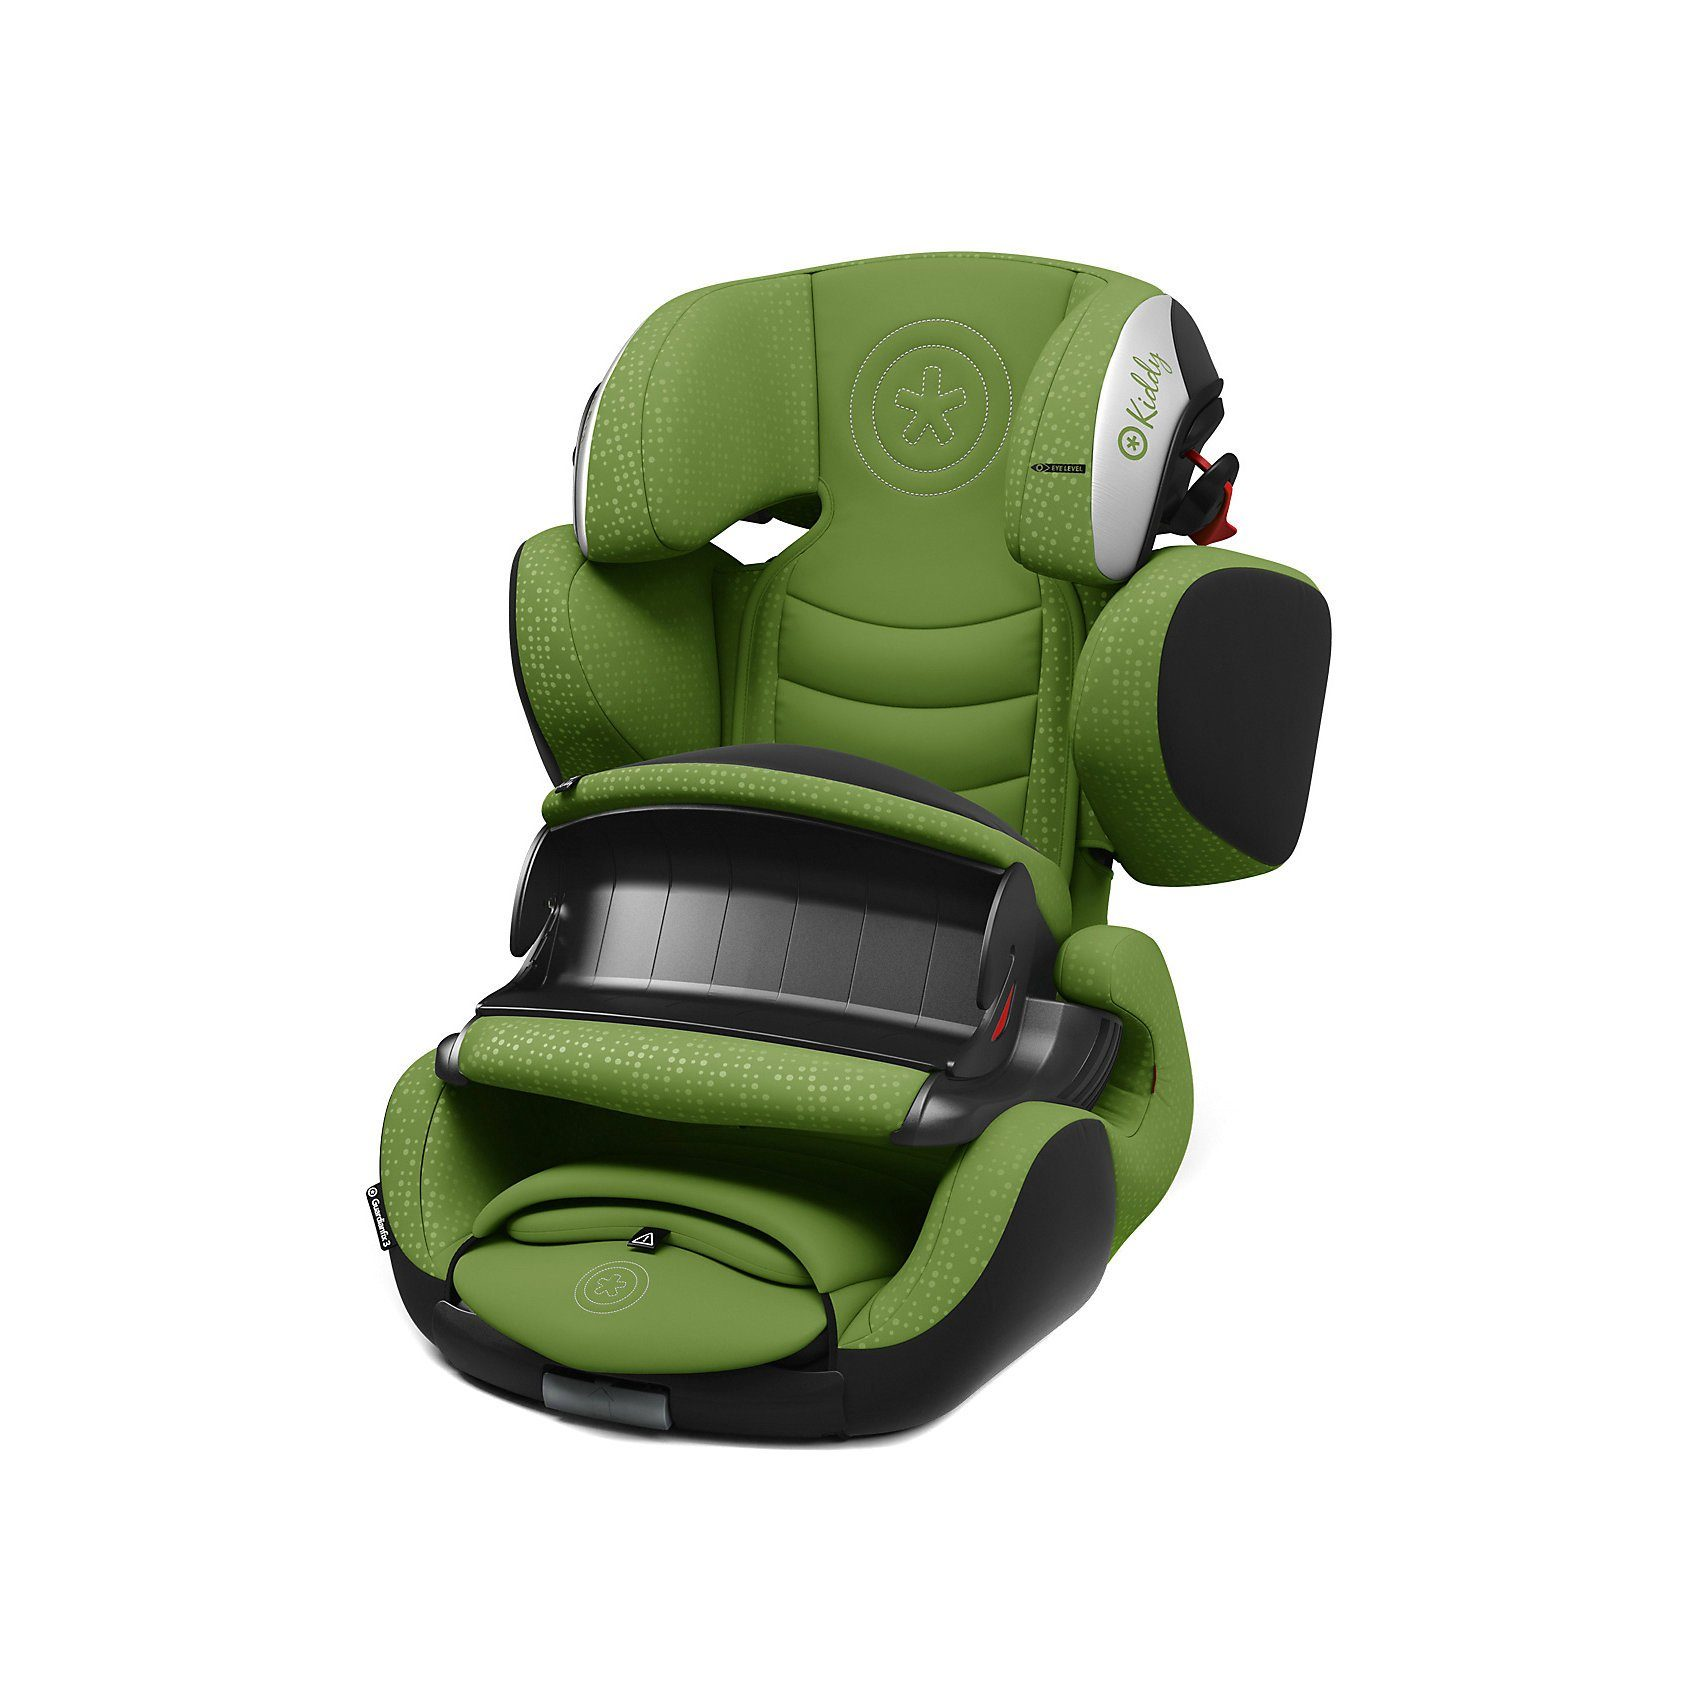 kiddy Auto-Kindersitz Guardianfix 3, Cactus Green, 2018